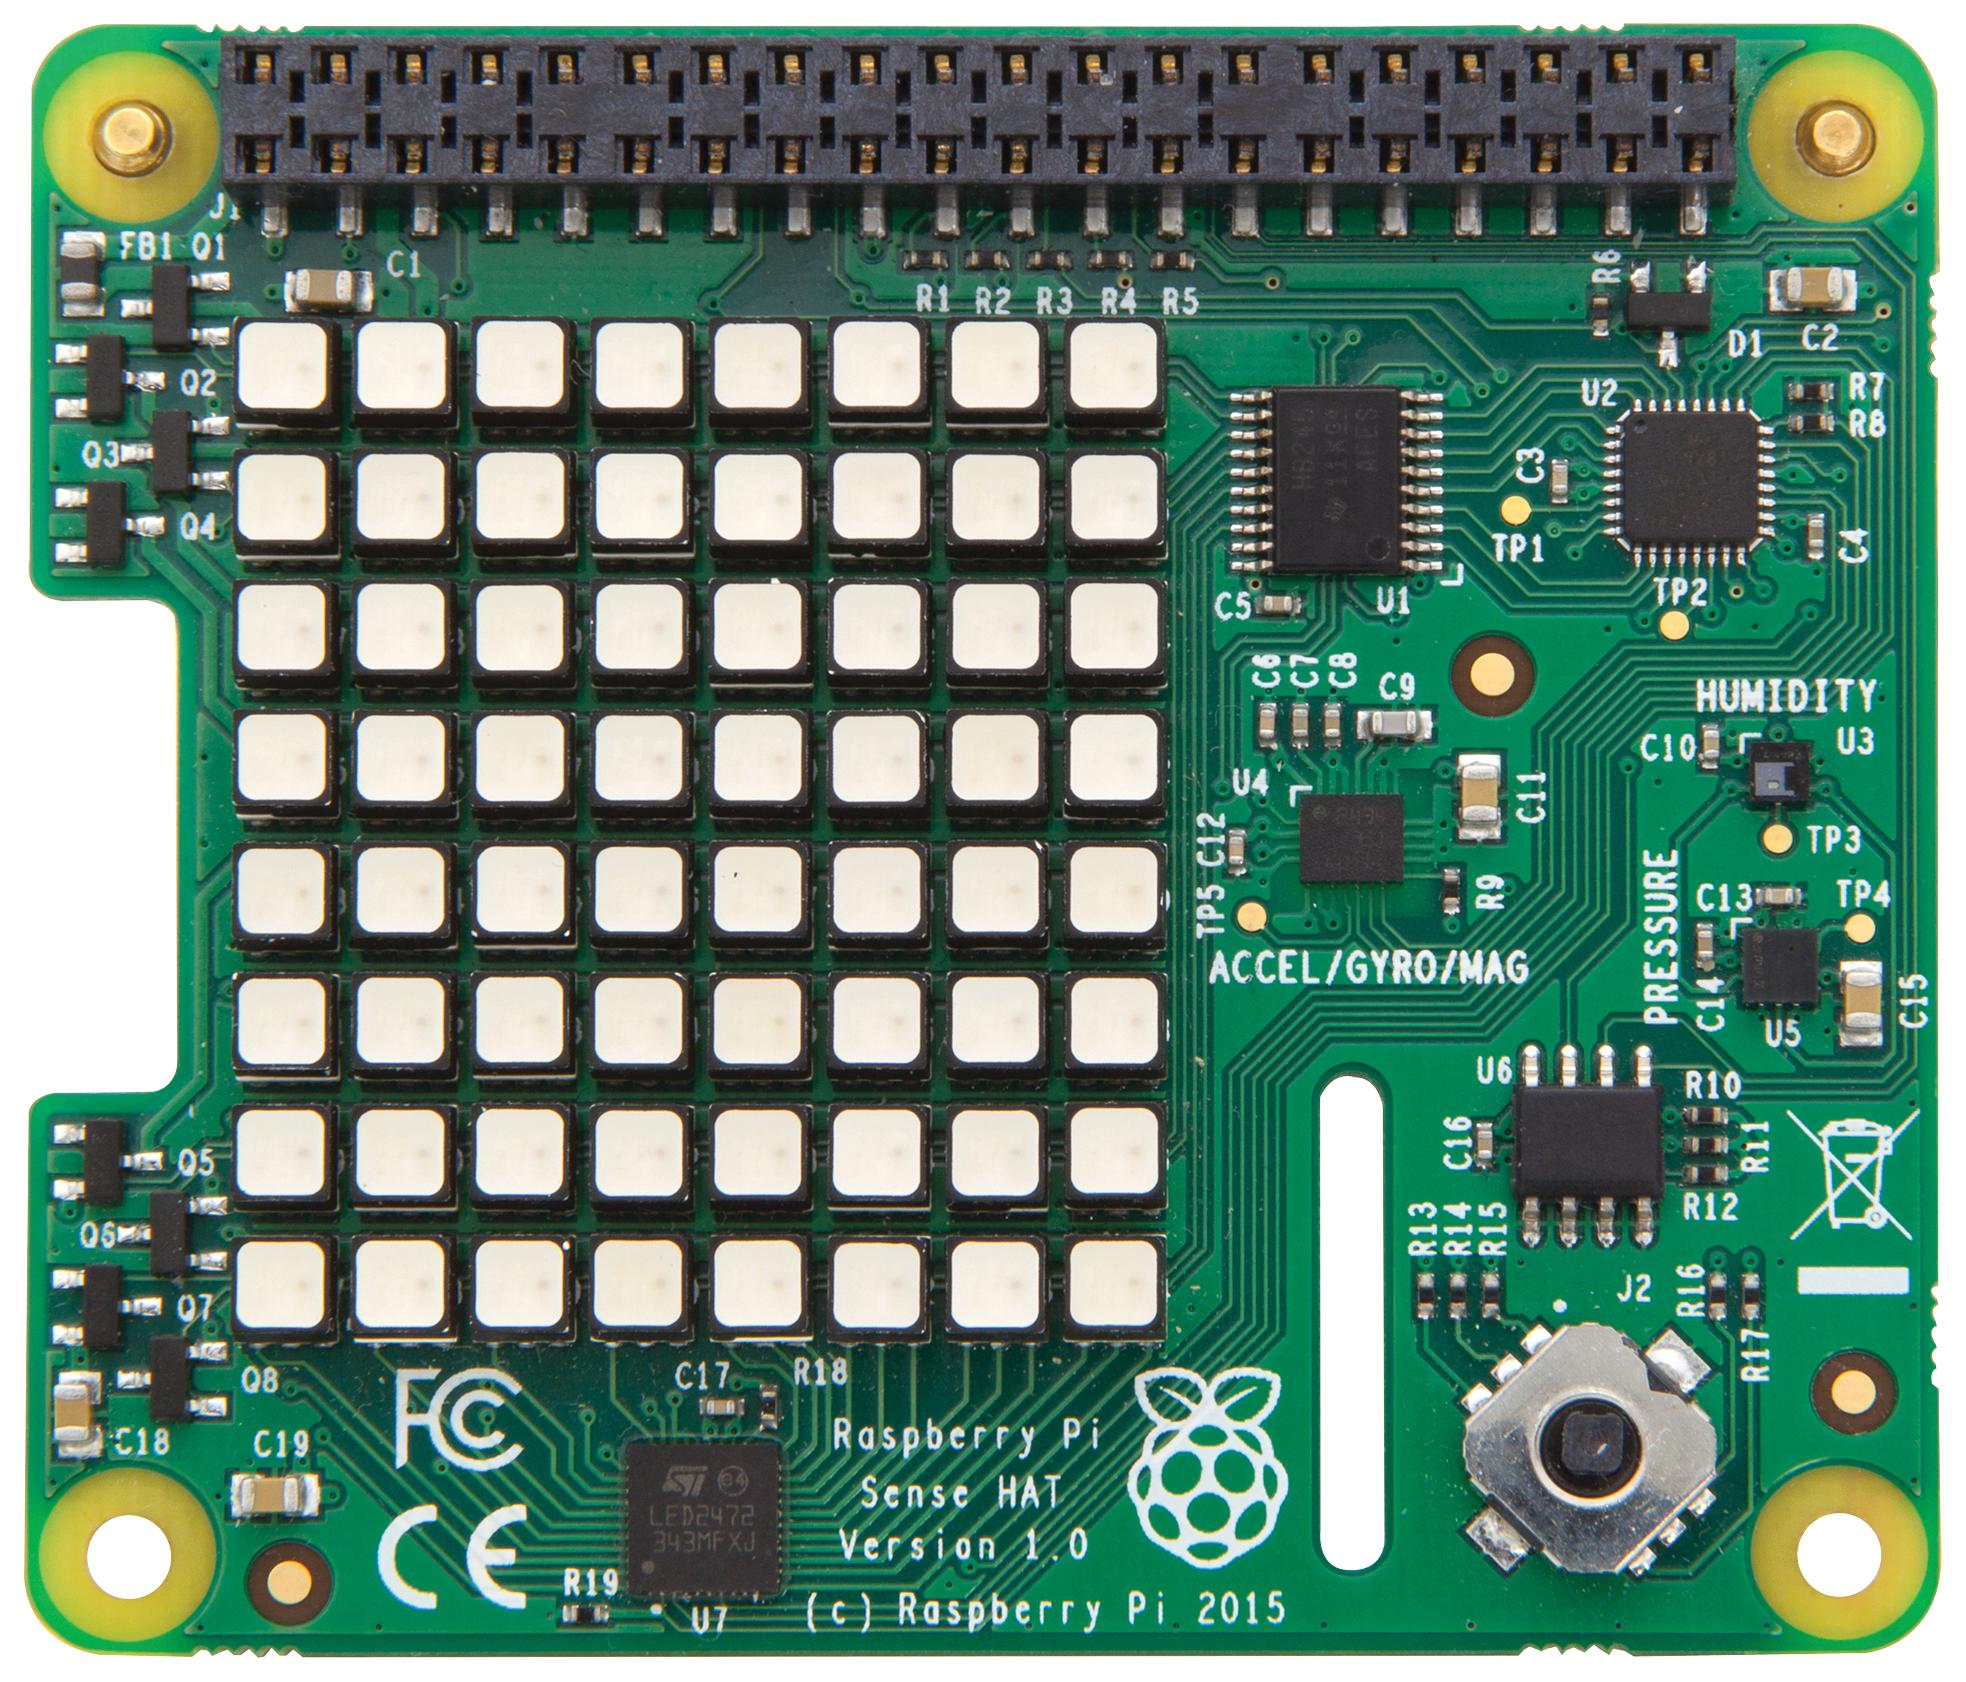 Raspberry Pi Sense HAT (with Orientation, Pressure, Humidity and